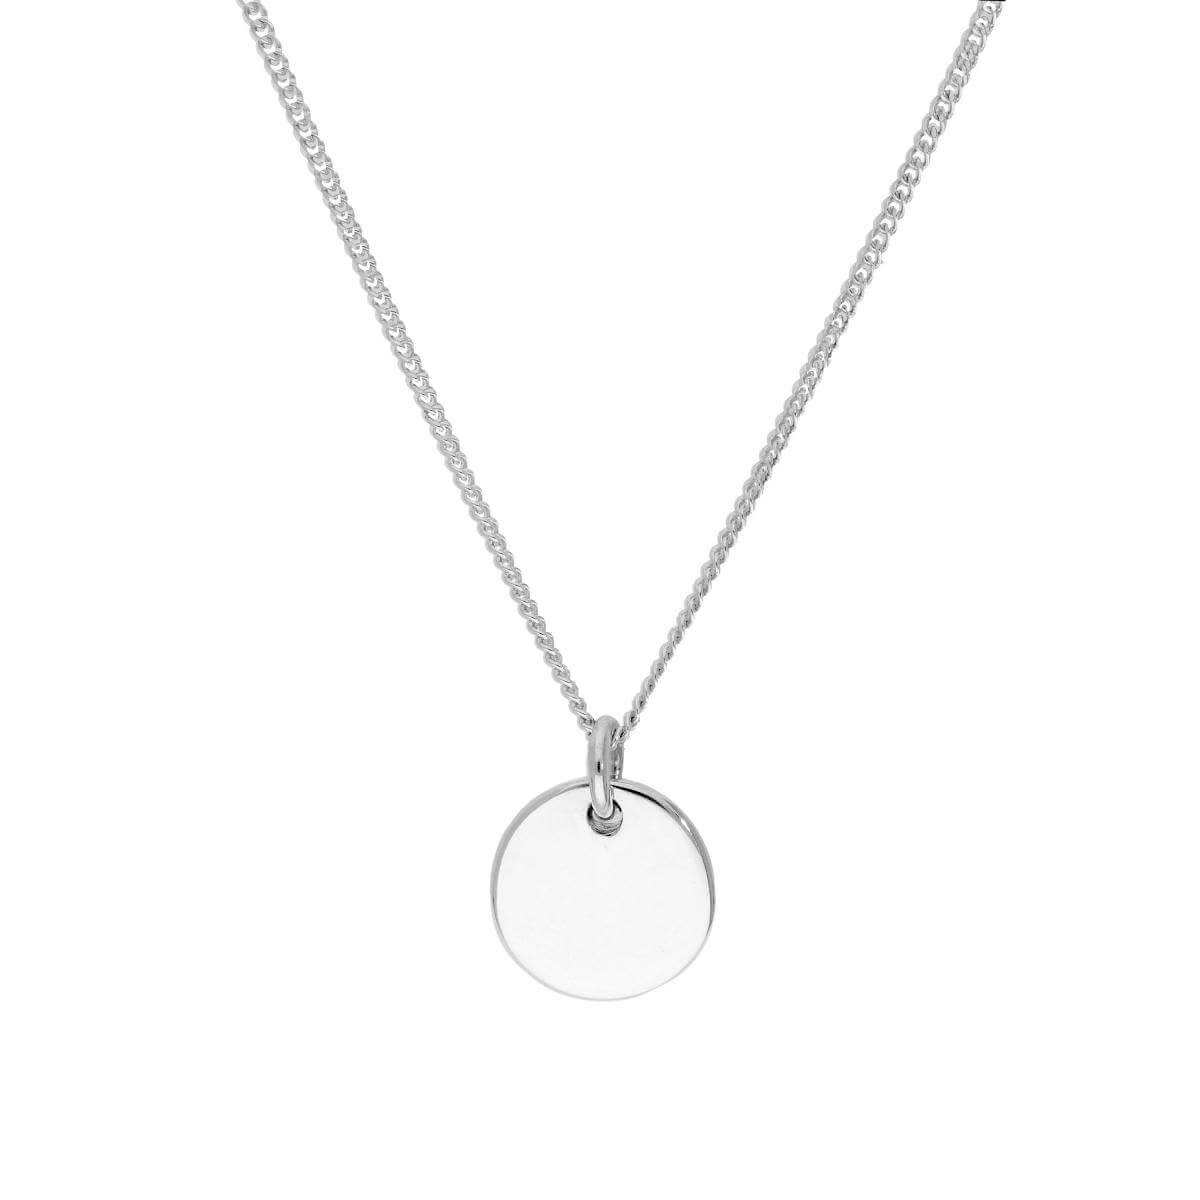 Sterling Silver Thick Engravable Round Pendant Necklace 16 - 24 Inches